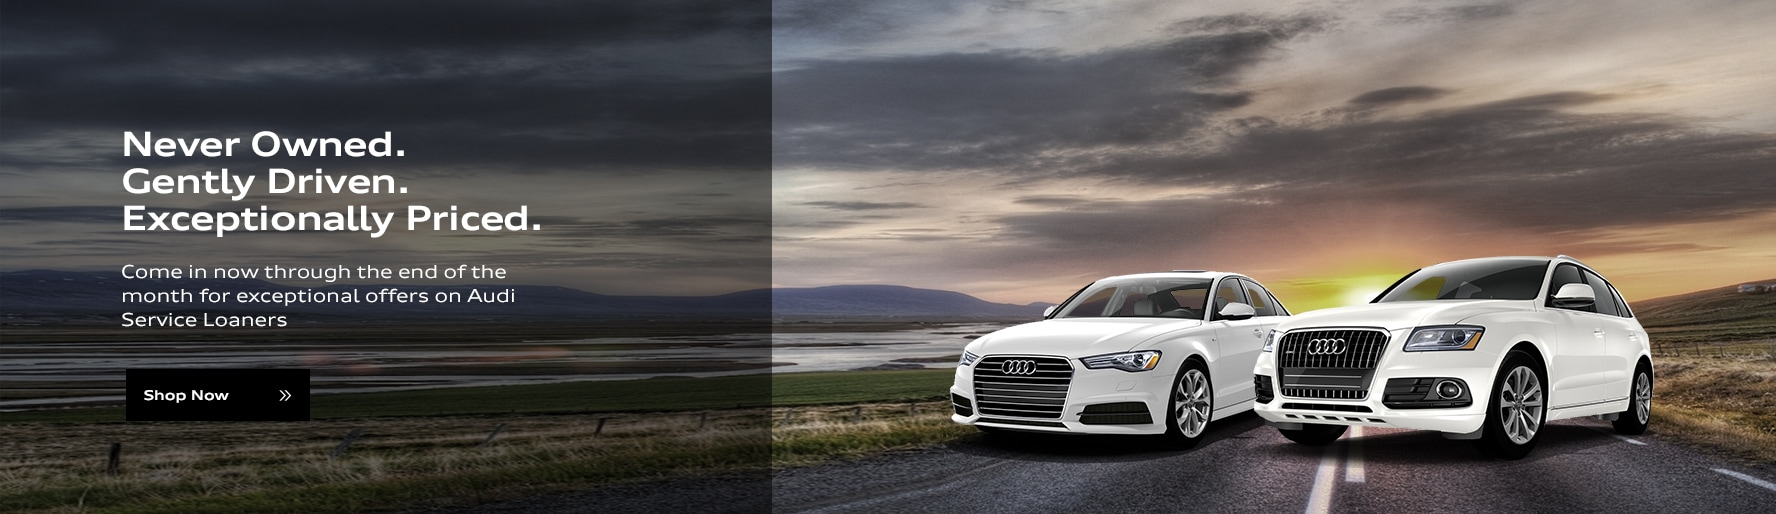 is quiet magazine by offers sport and reviews tdi the car in review punch sufficient audi